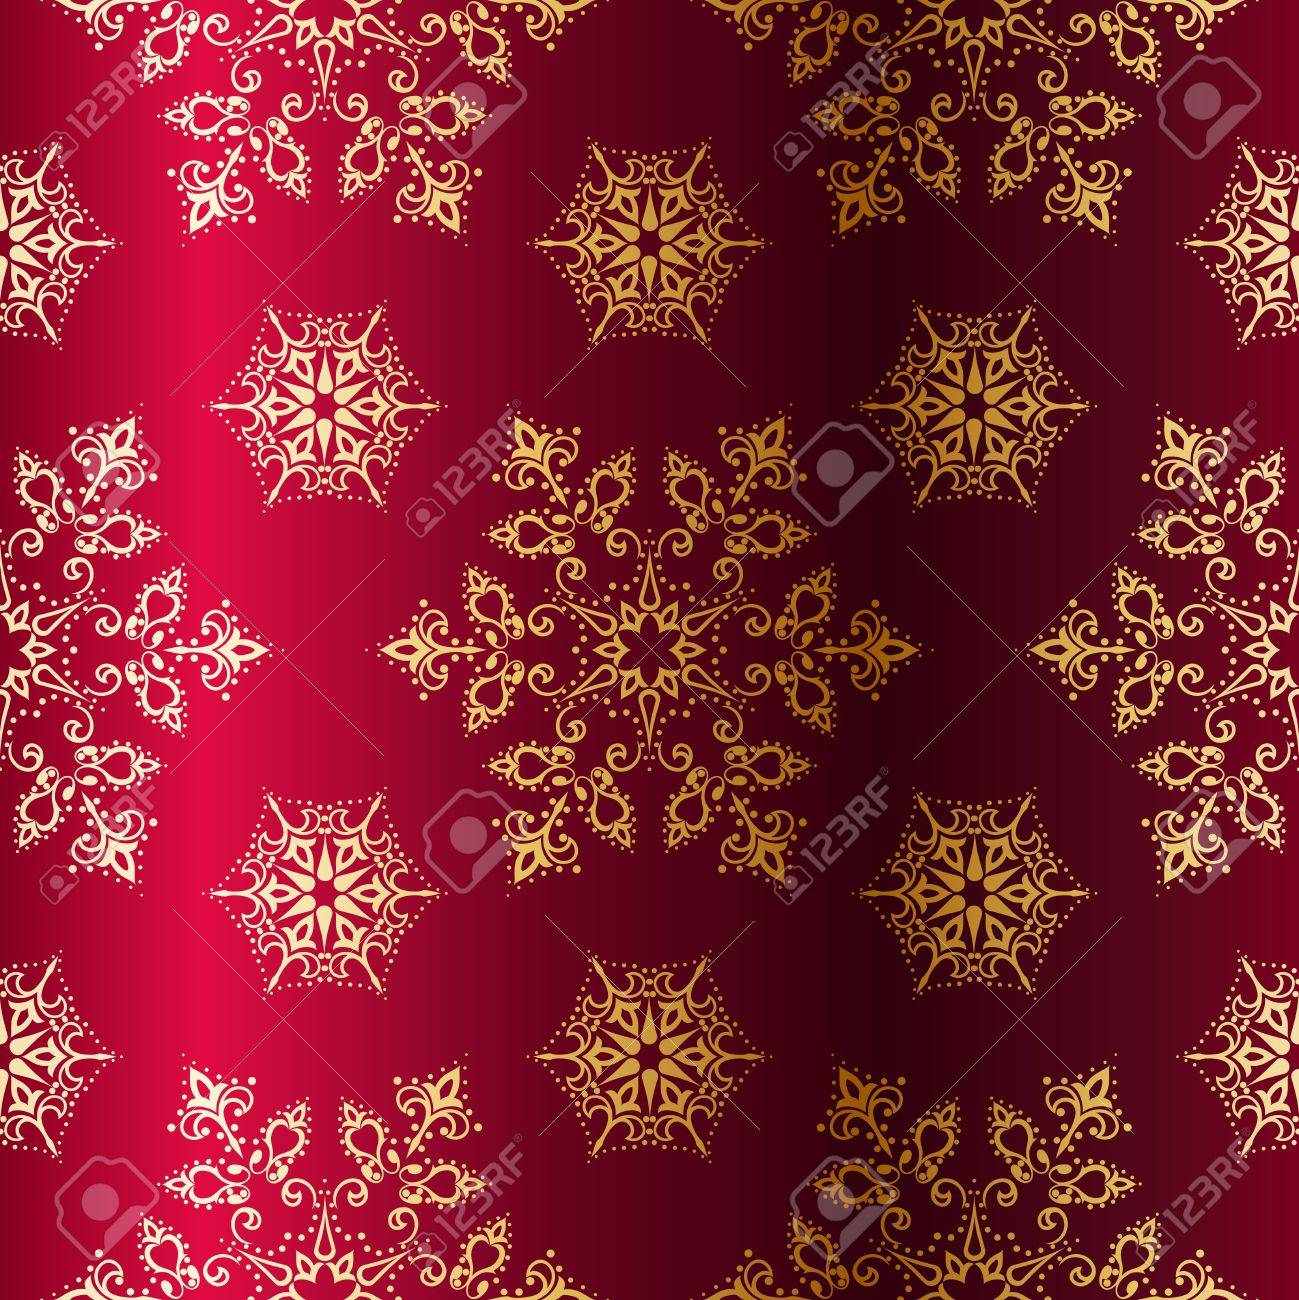 Red seamless Christmas background with gold stars. Tiles can be combined seamlessly. Graphics are grouped and in several layers for easy editing. The file can be scaled to any size. Stock Vector - 5769547